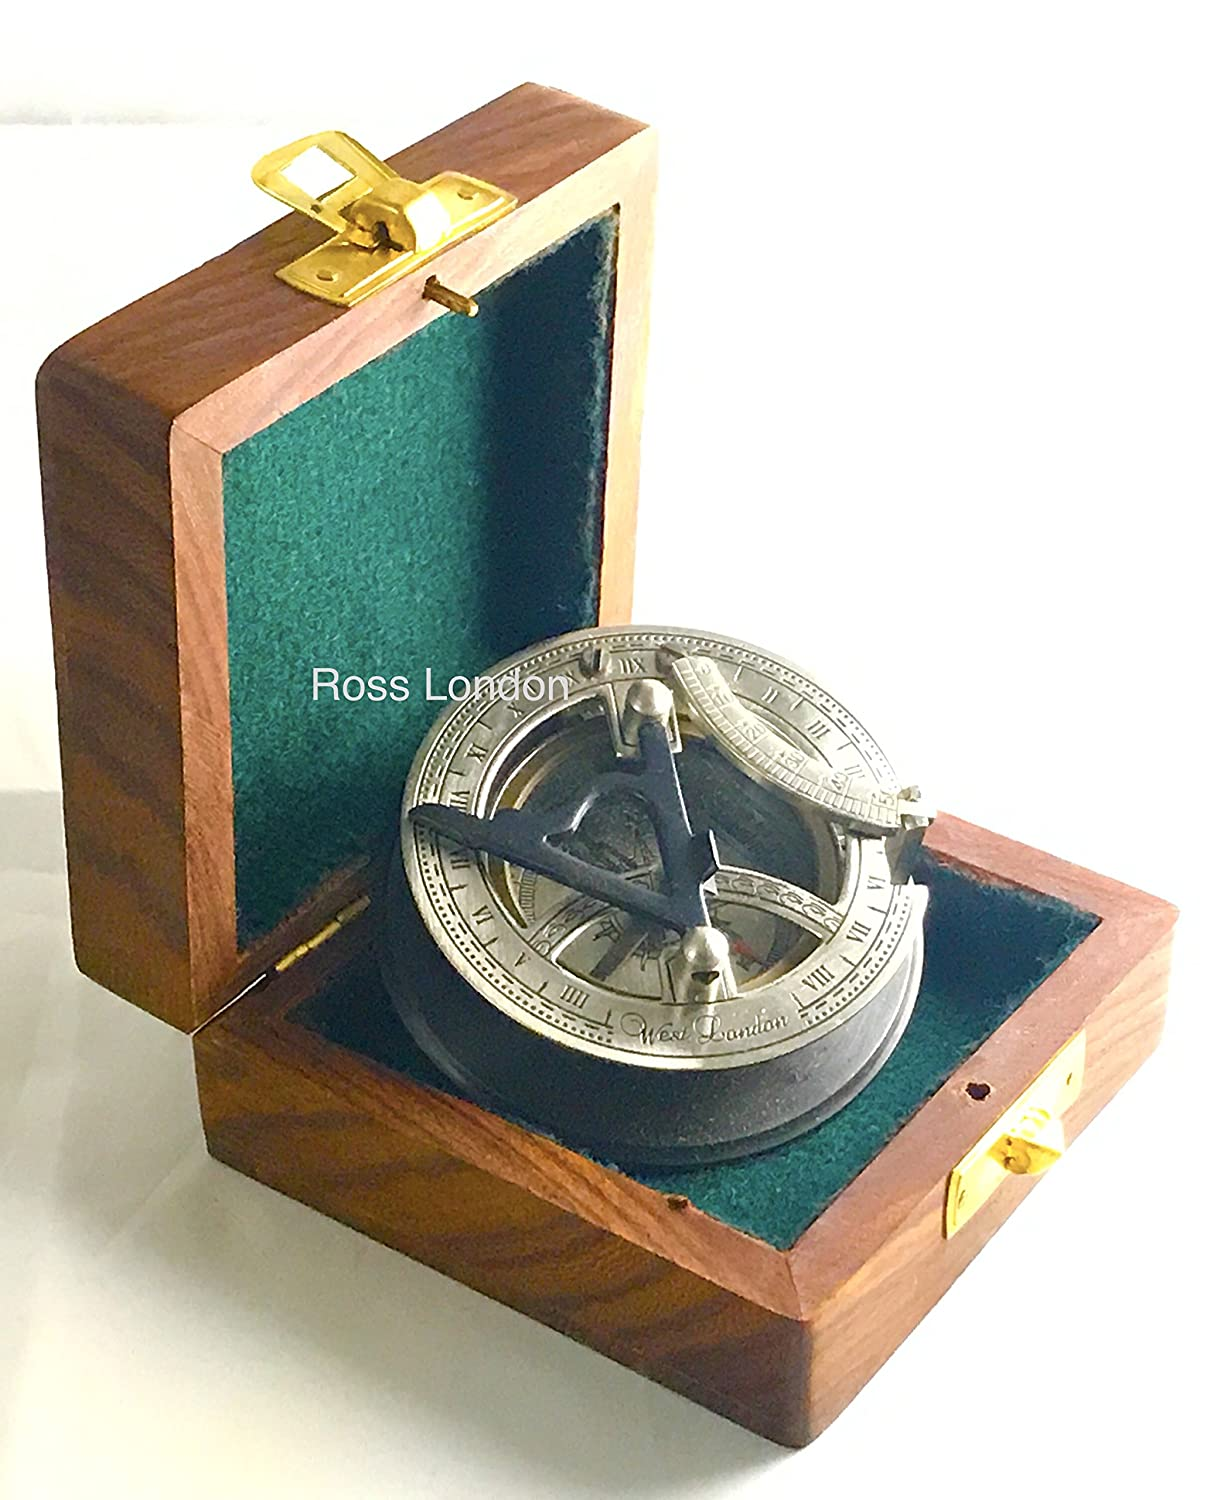 BRASS SUNDIAL COMPASS -Solid Brass Pocket Sundial - West London With Wooden Box ross london